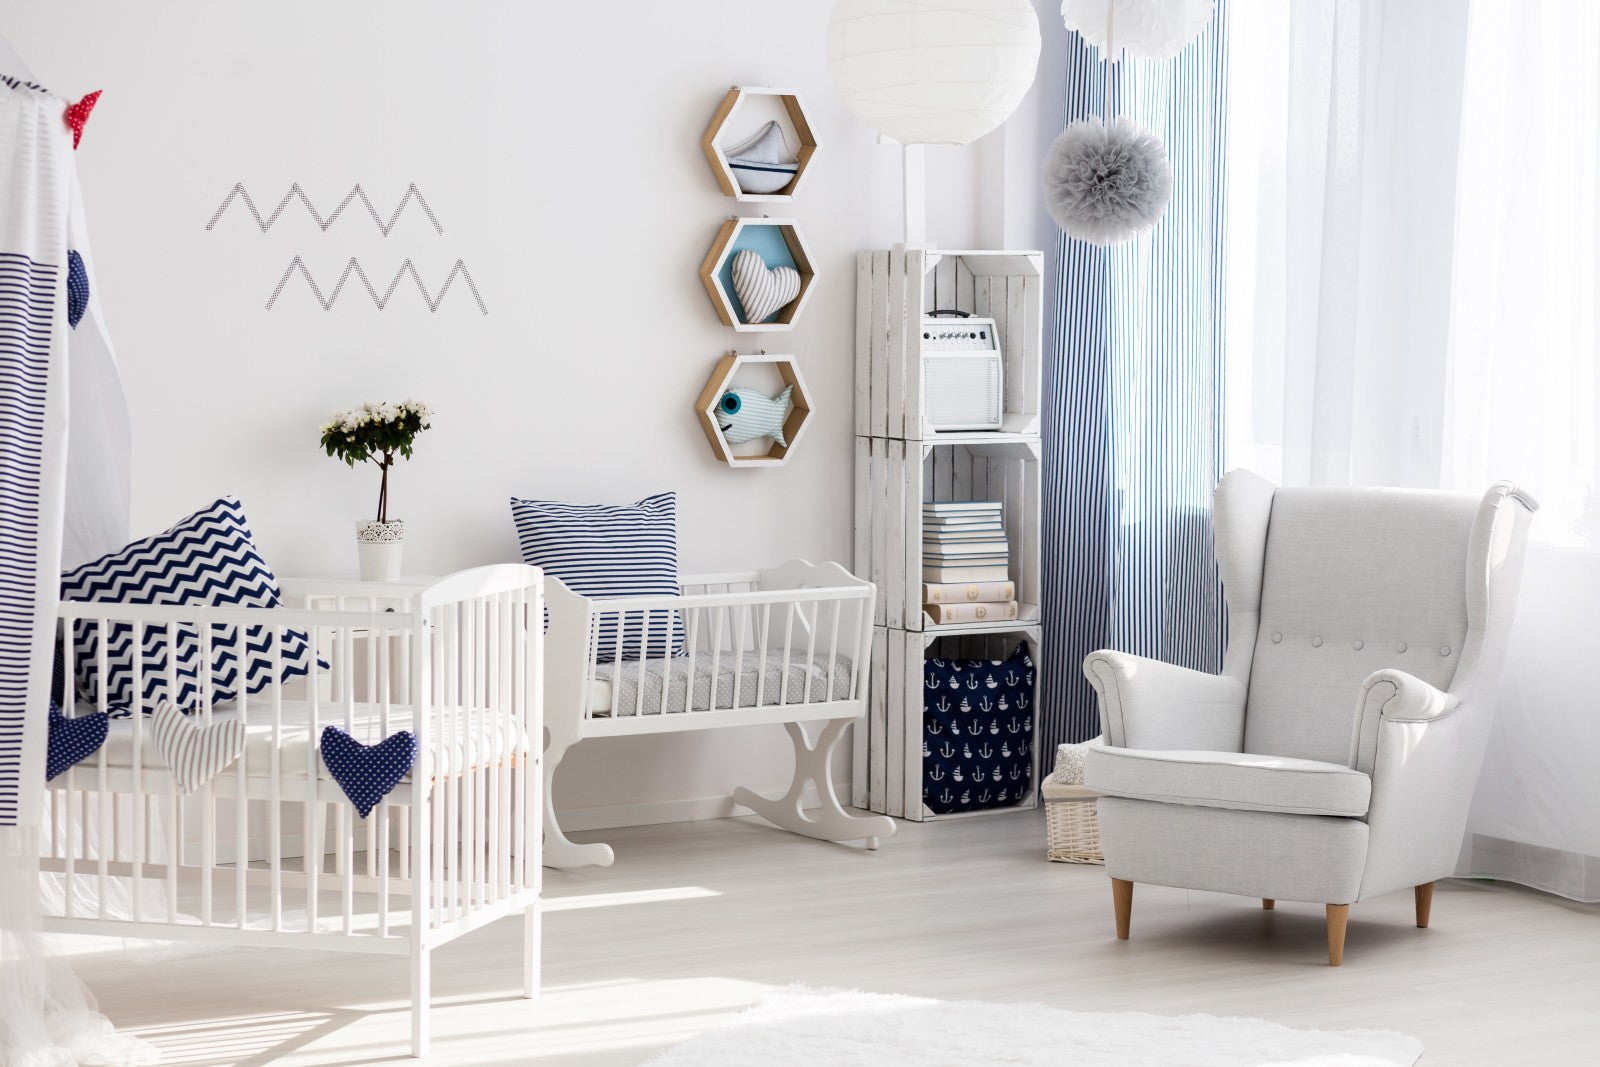 Ecofriendly Nursery Ideas & Inspiration